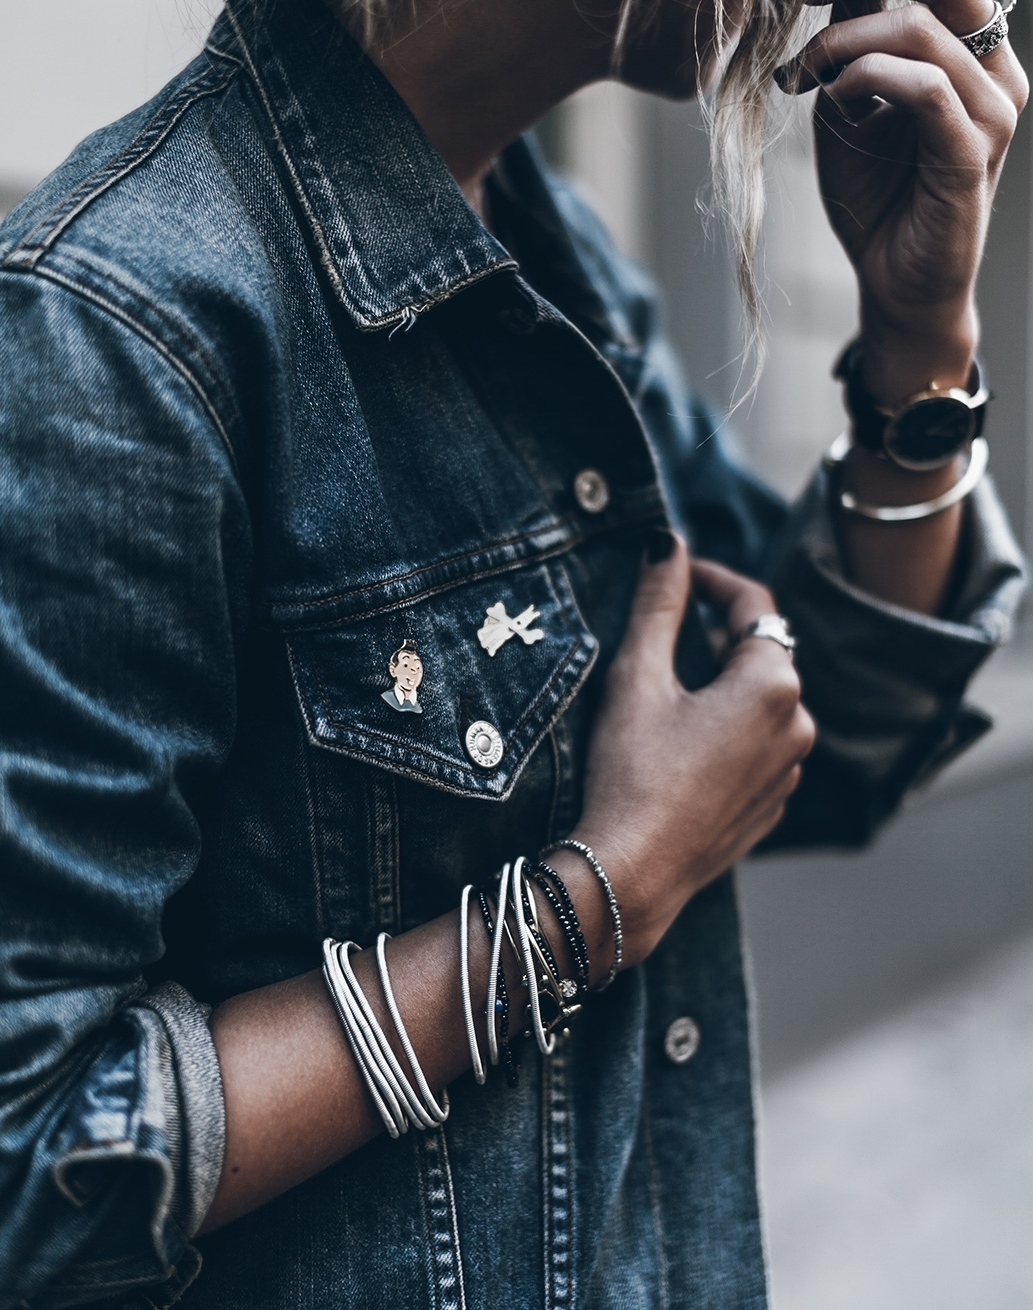 ROSE & IVY Journal Summer Style A Guide to Denim Jackets